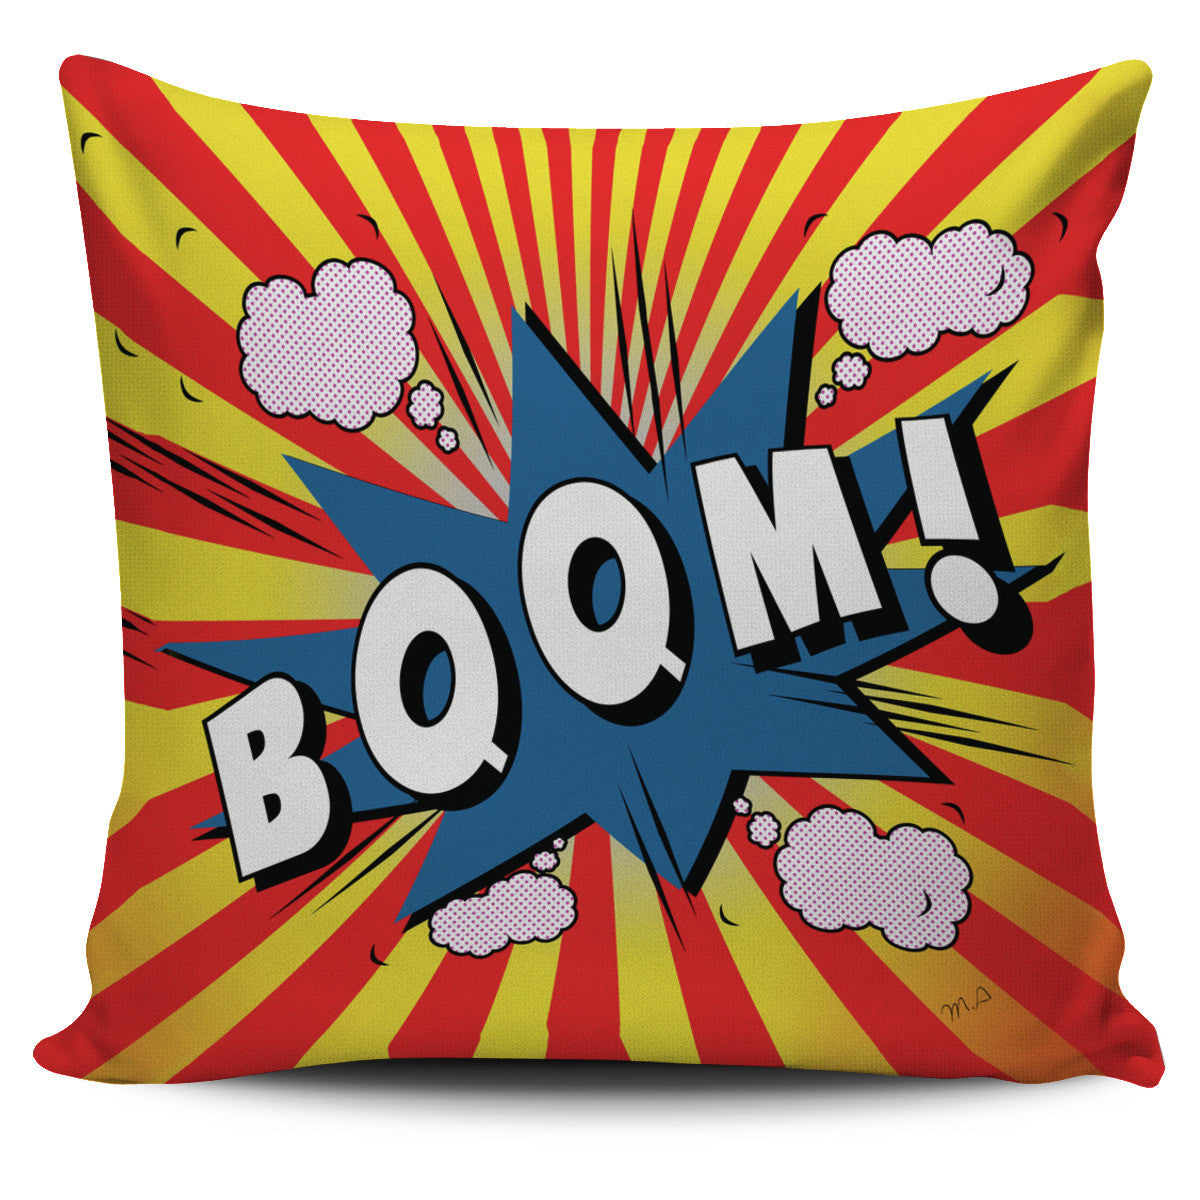 Boom Pillow Covers